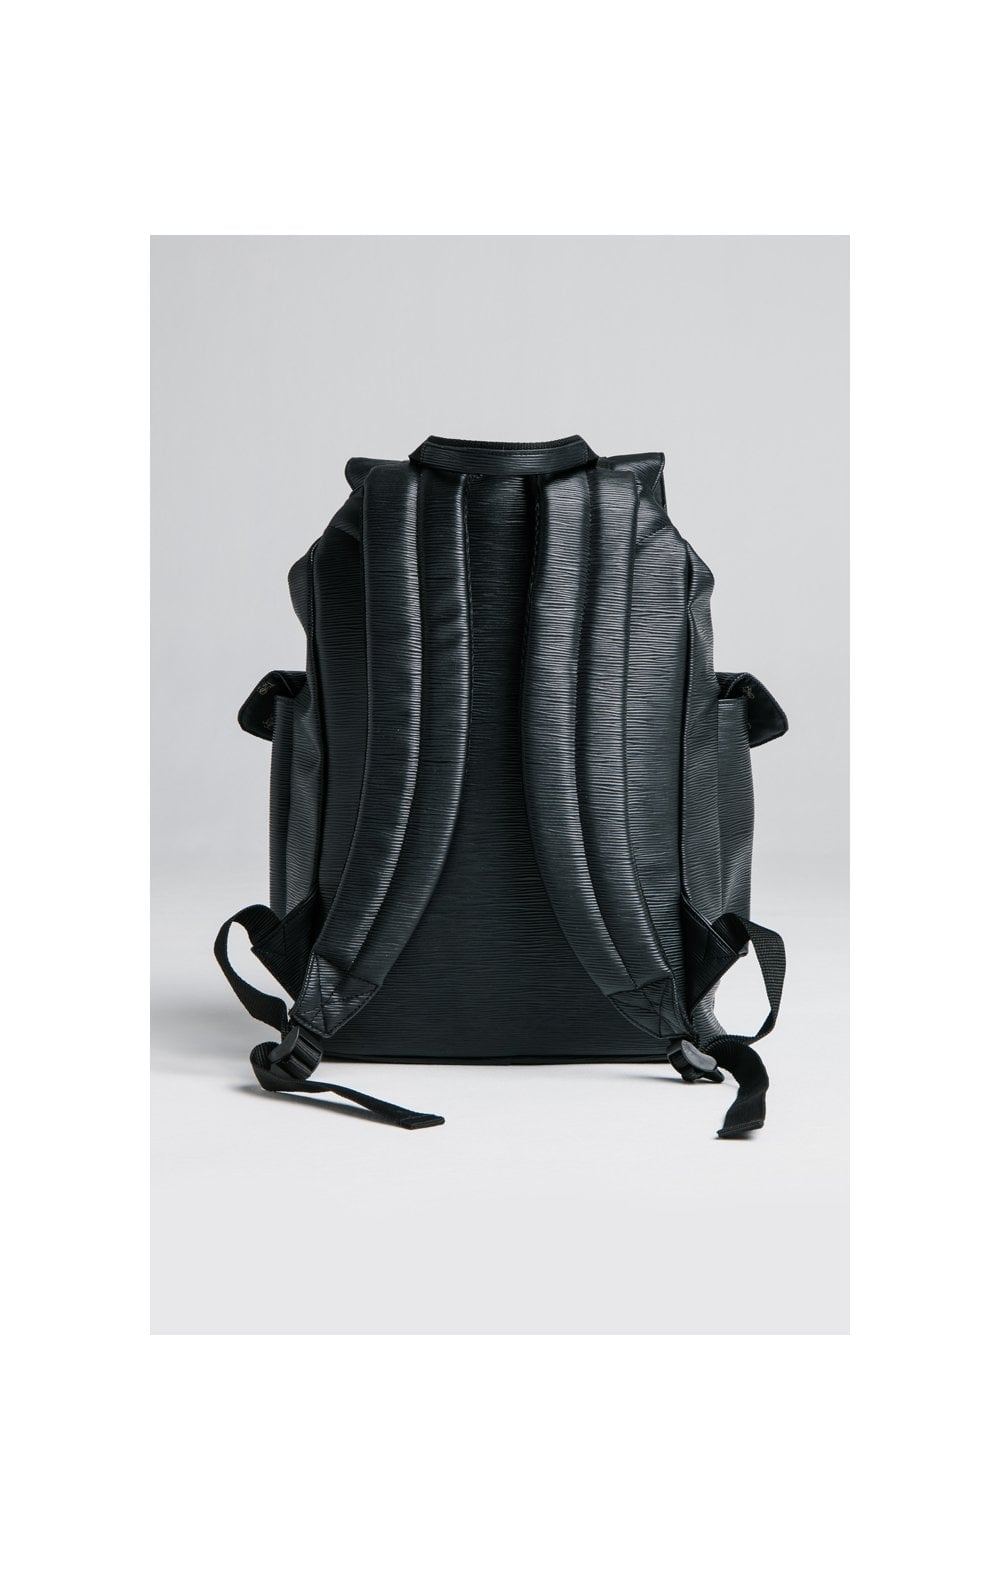 SikSilk Elite Backpack- Black (6)